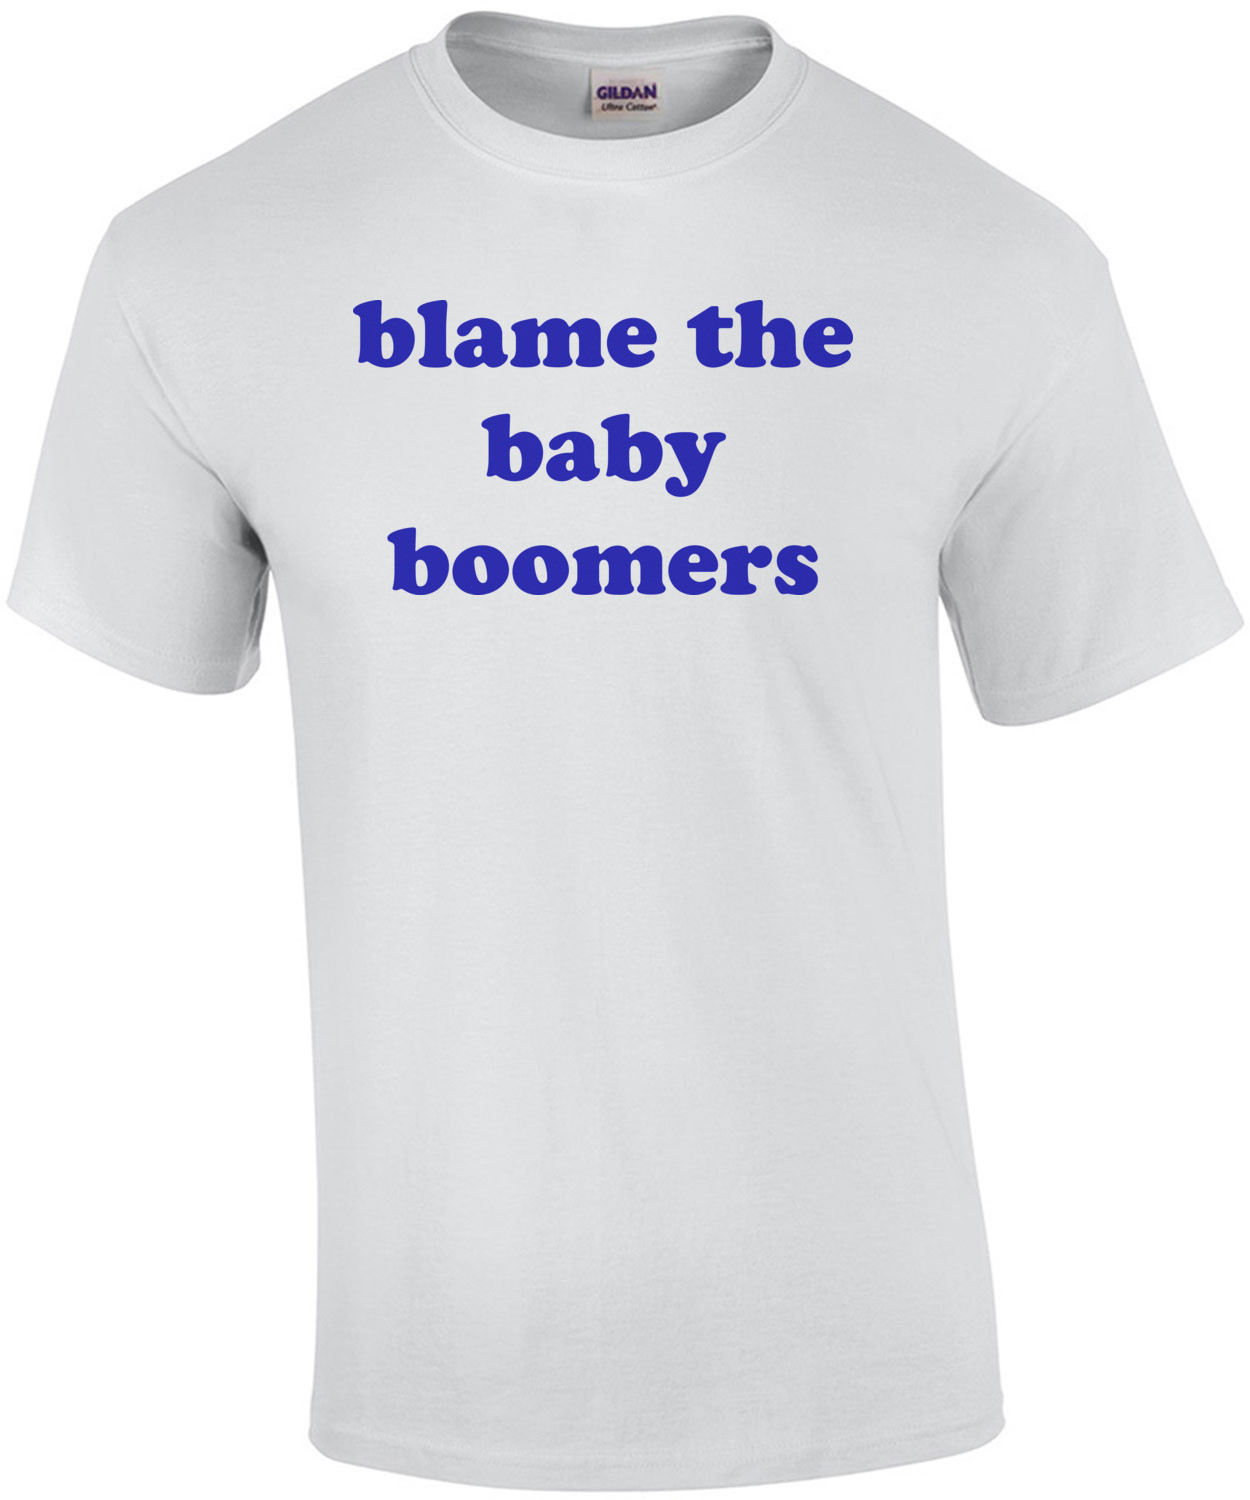 blame the baby boomers T-Shirt